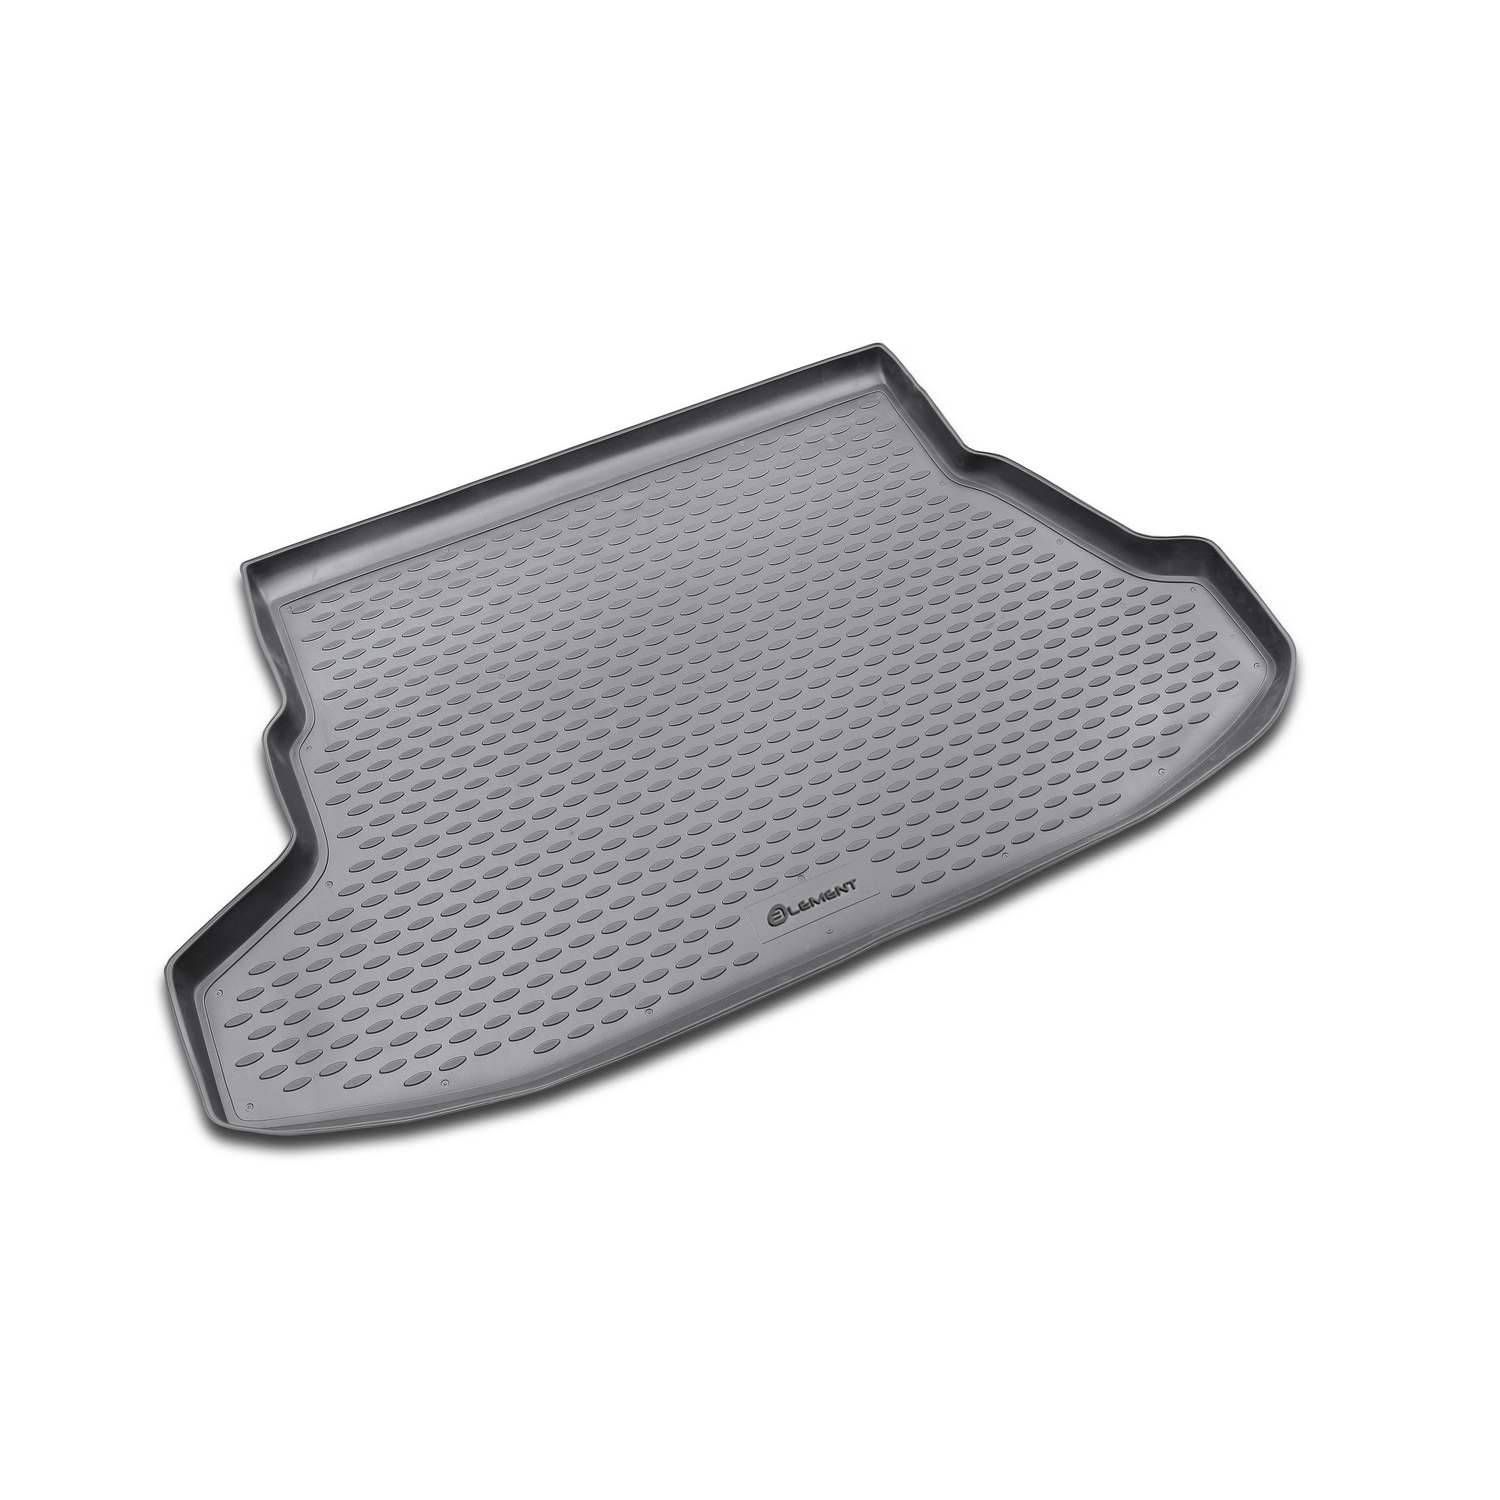 Trunk Mat For HYUNDAI Coupe 2001-, Coop. NLC.20.16.B16